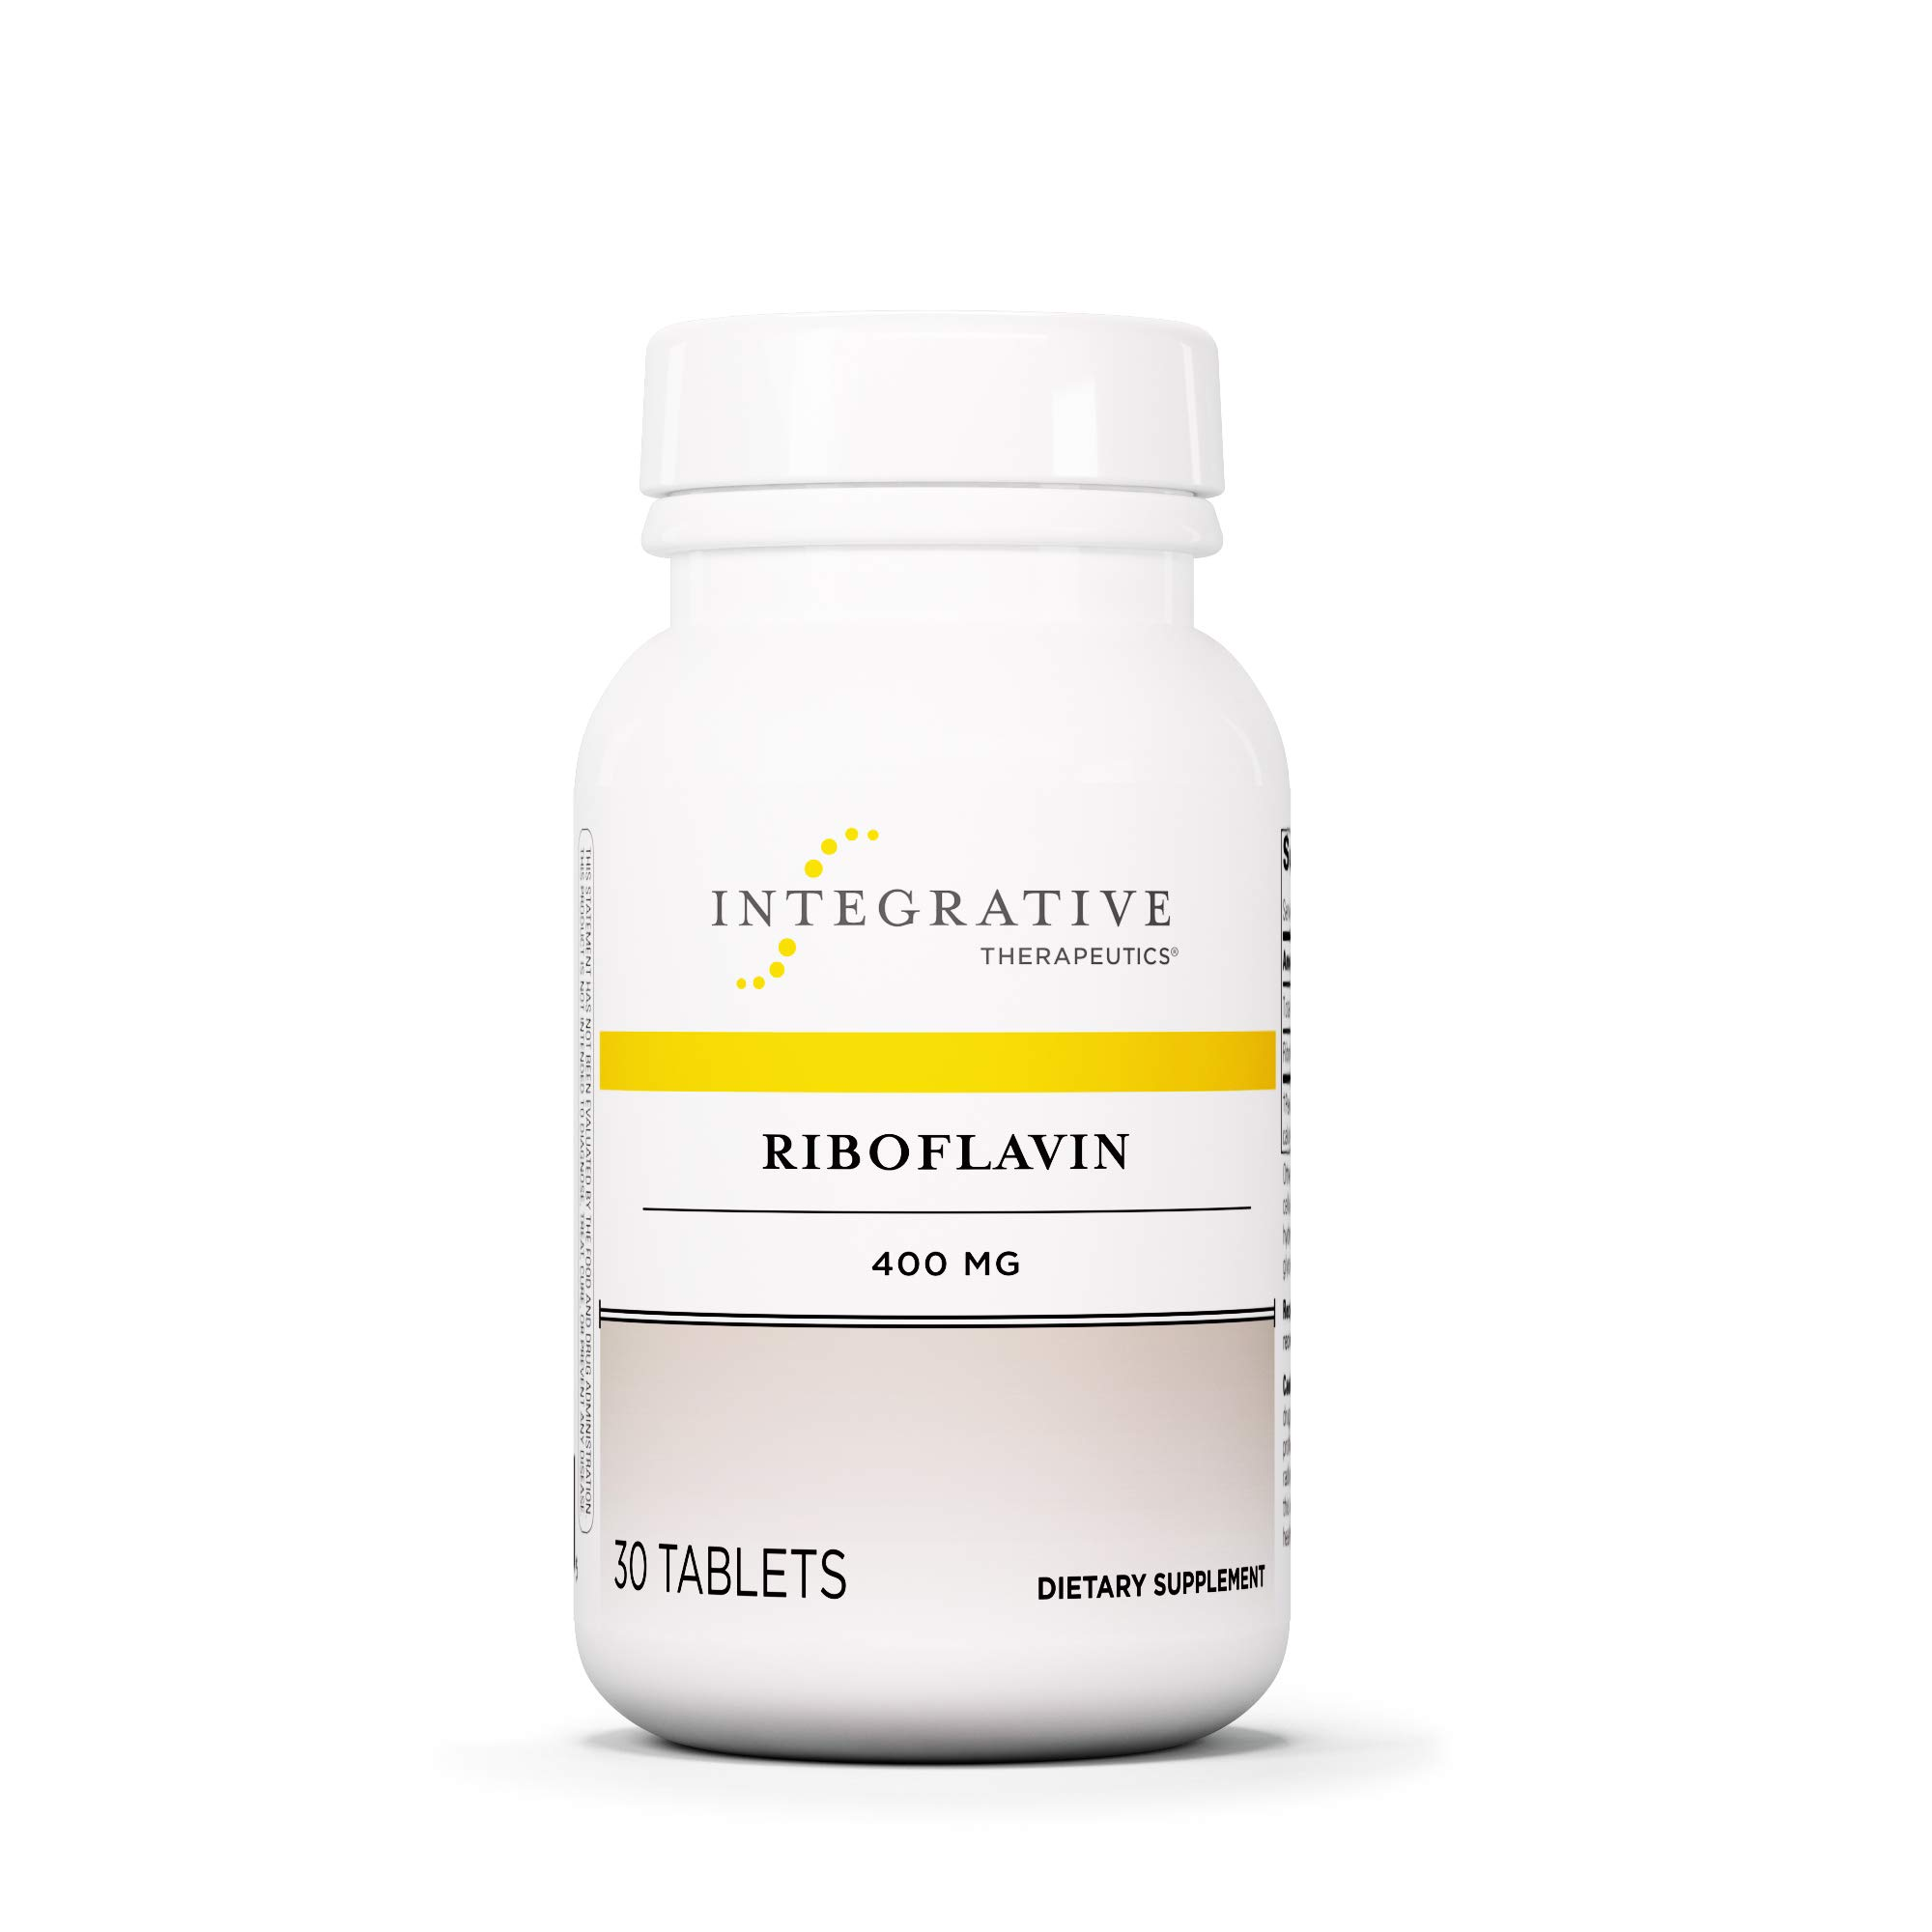 Integrative Therapeutics - Riboflavin (Vitamin B2) - 400 mg - Energy Production Support Supplement - 30 Tablets by Integrative Therapeutics